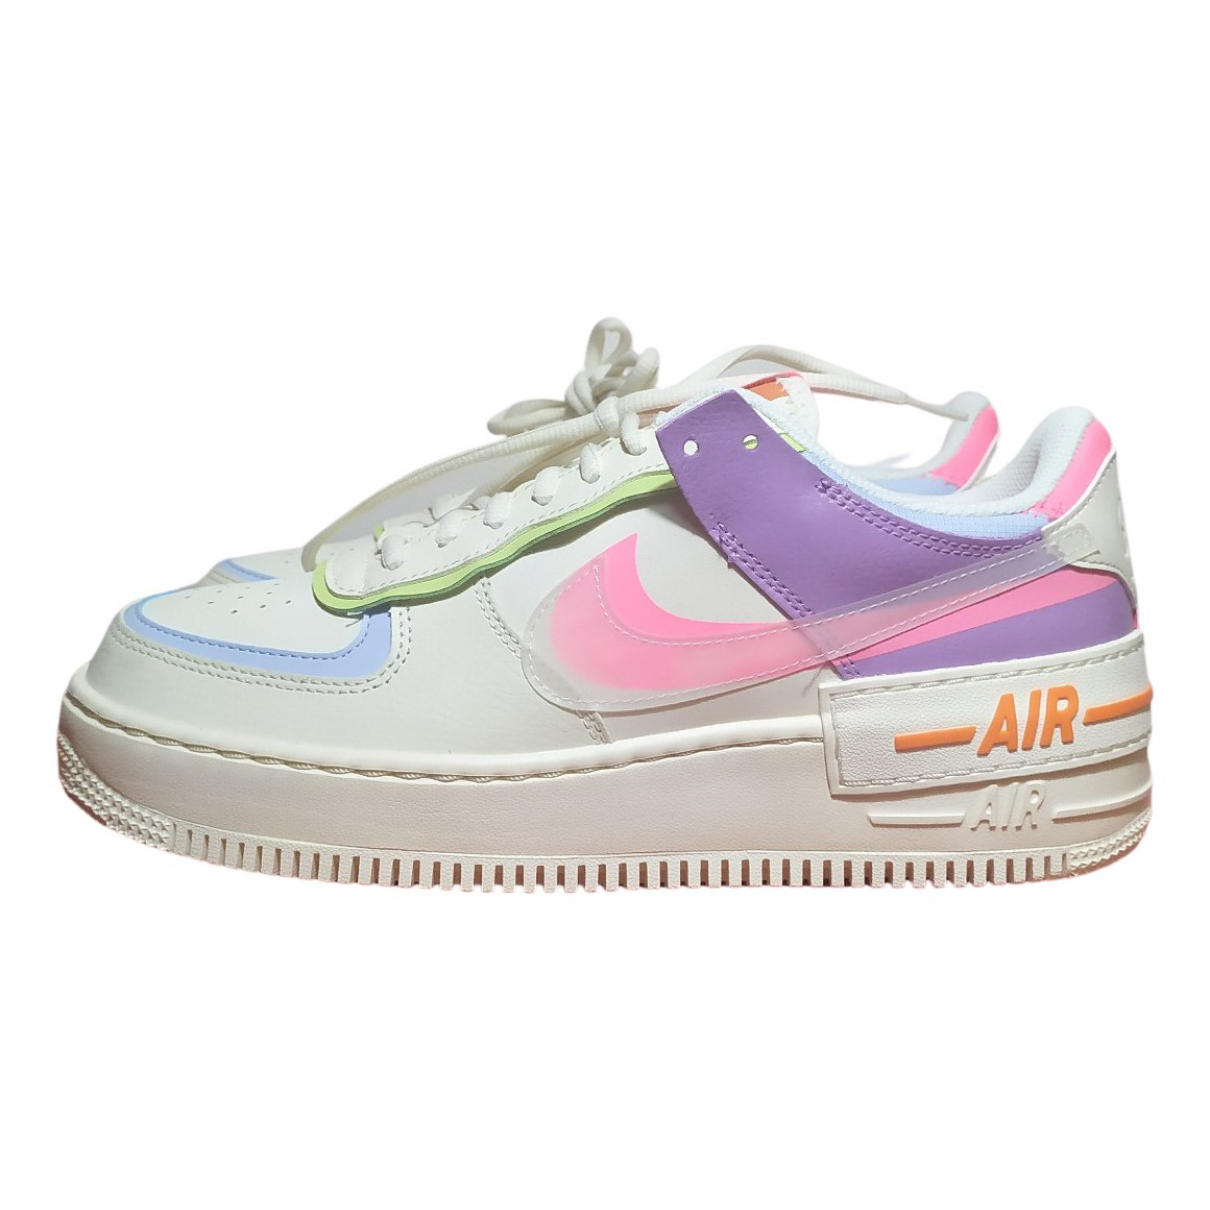 Nike Air Force 1 White Leather Trainers for Women 11 US